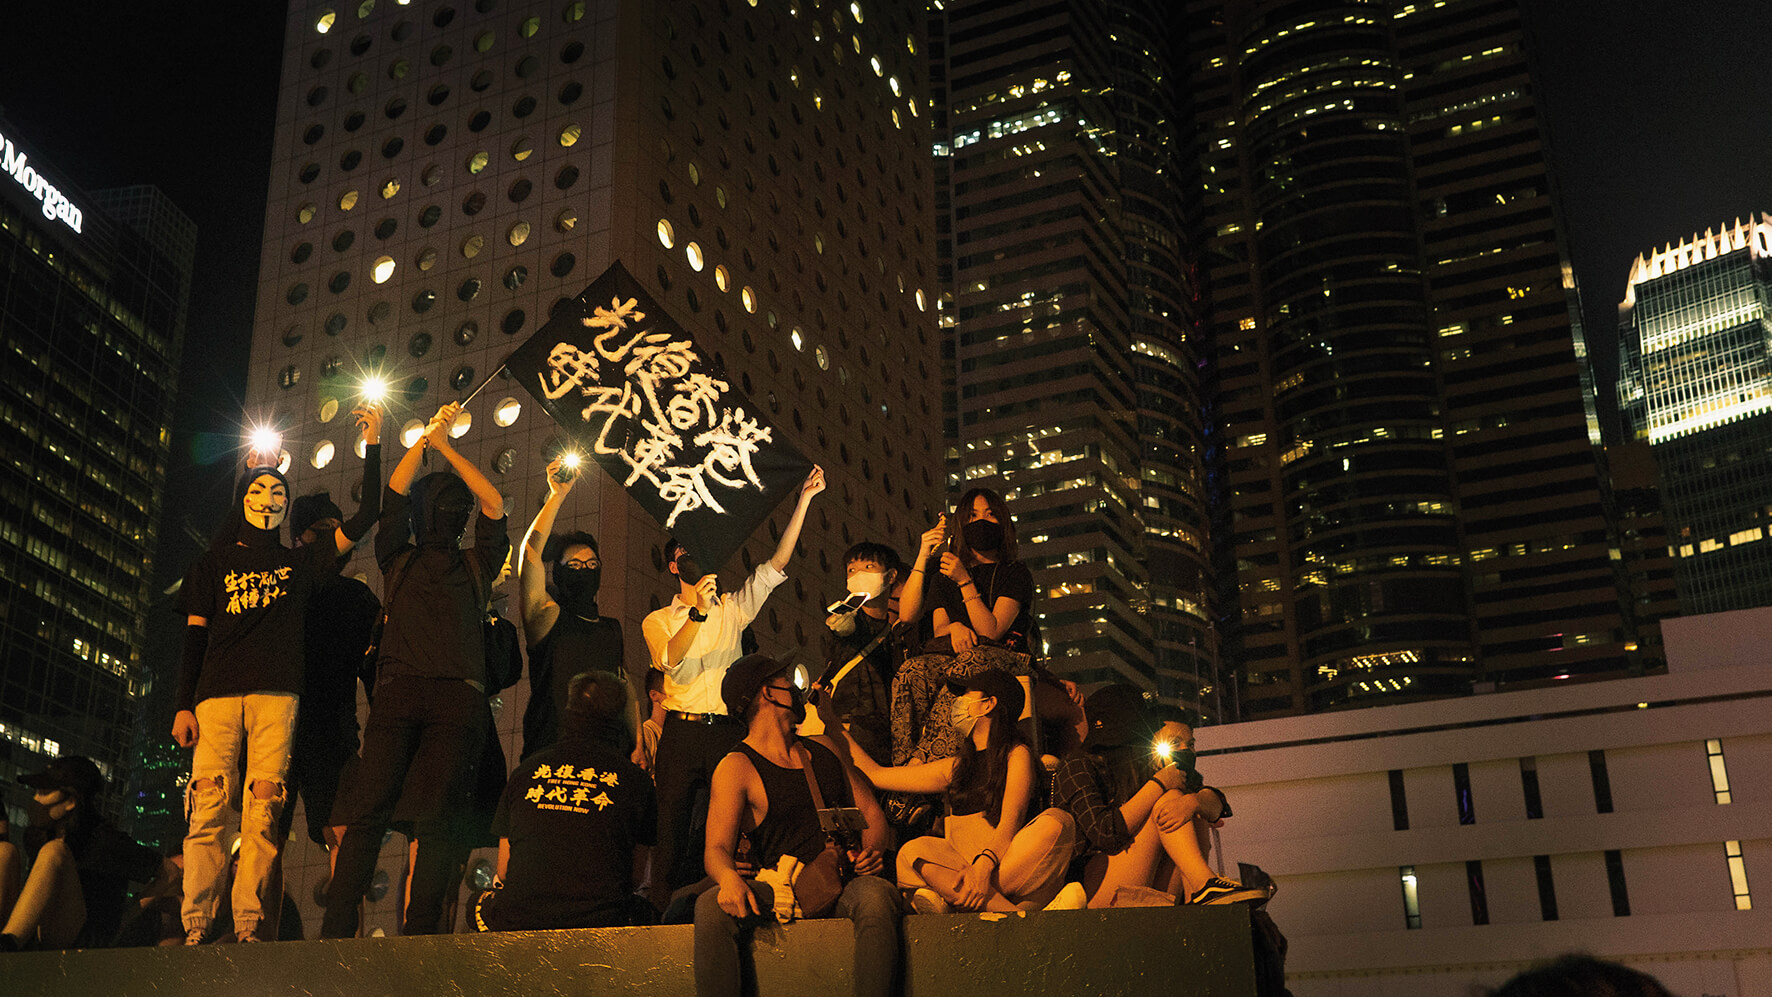 F:ACT Award: Documentary on fight for democracy in Hong Kong wins